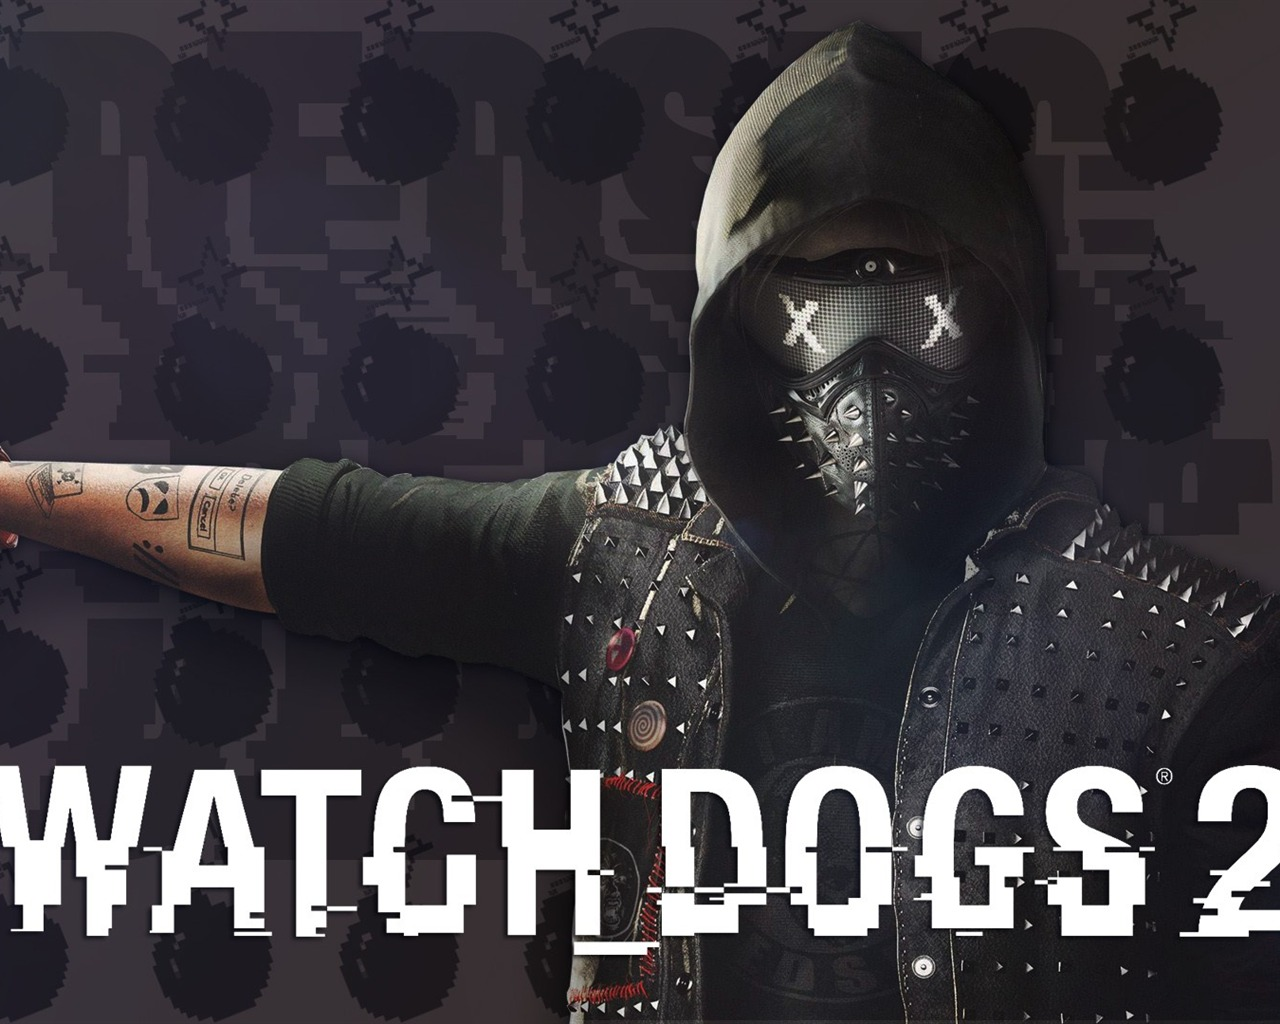 Game / Wrench In Watch Dogs 2 2017 Game Hd Wallpapers - Pc Game , HD Wallpaper & Backgrounds